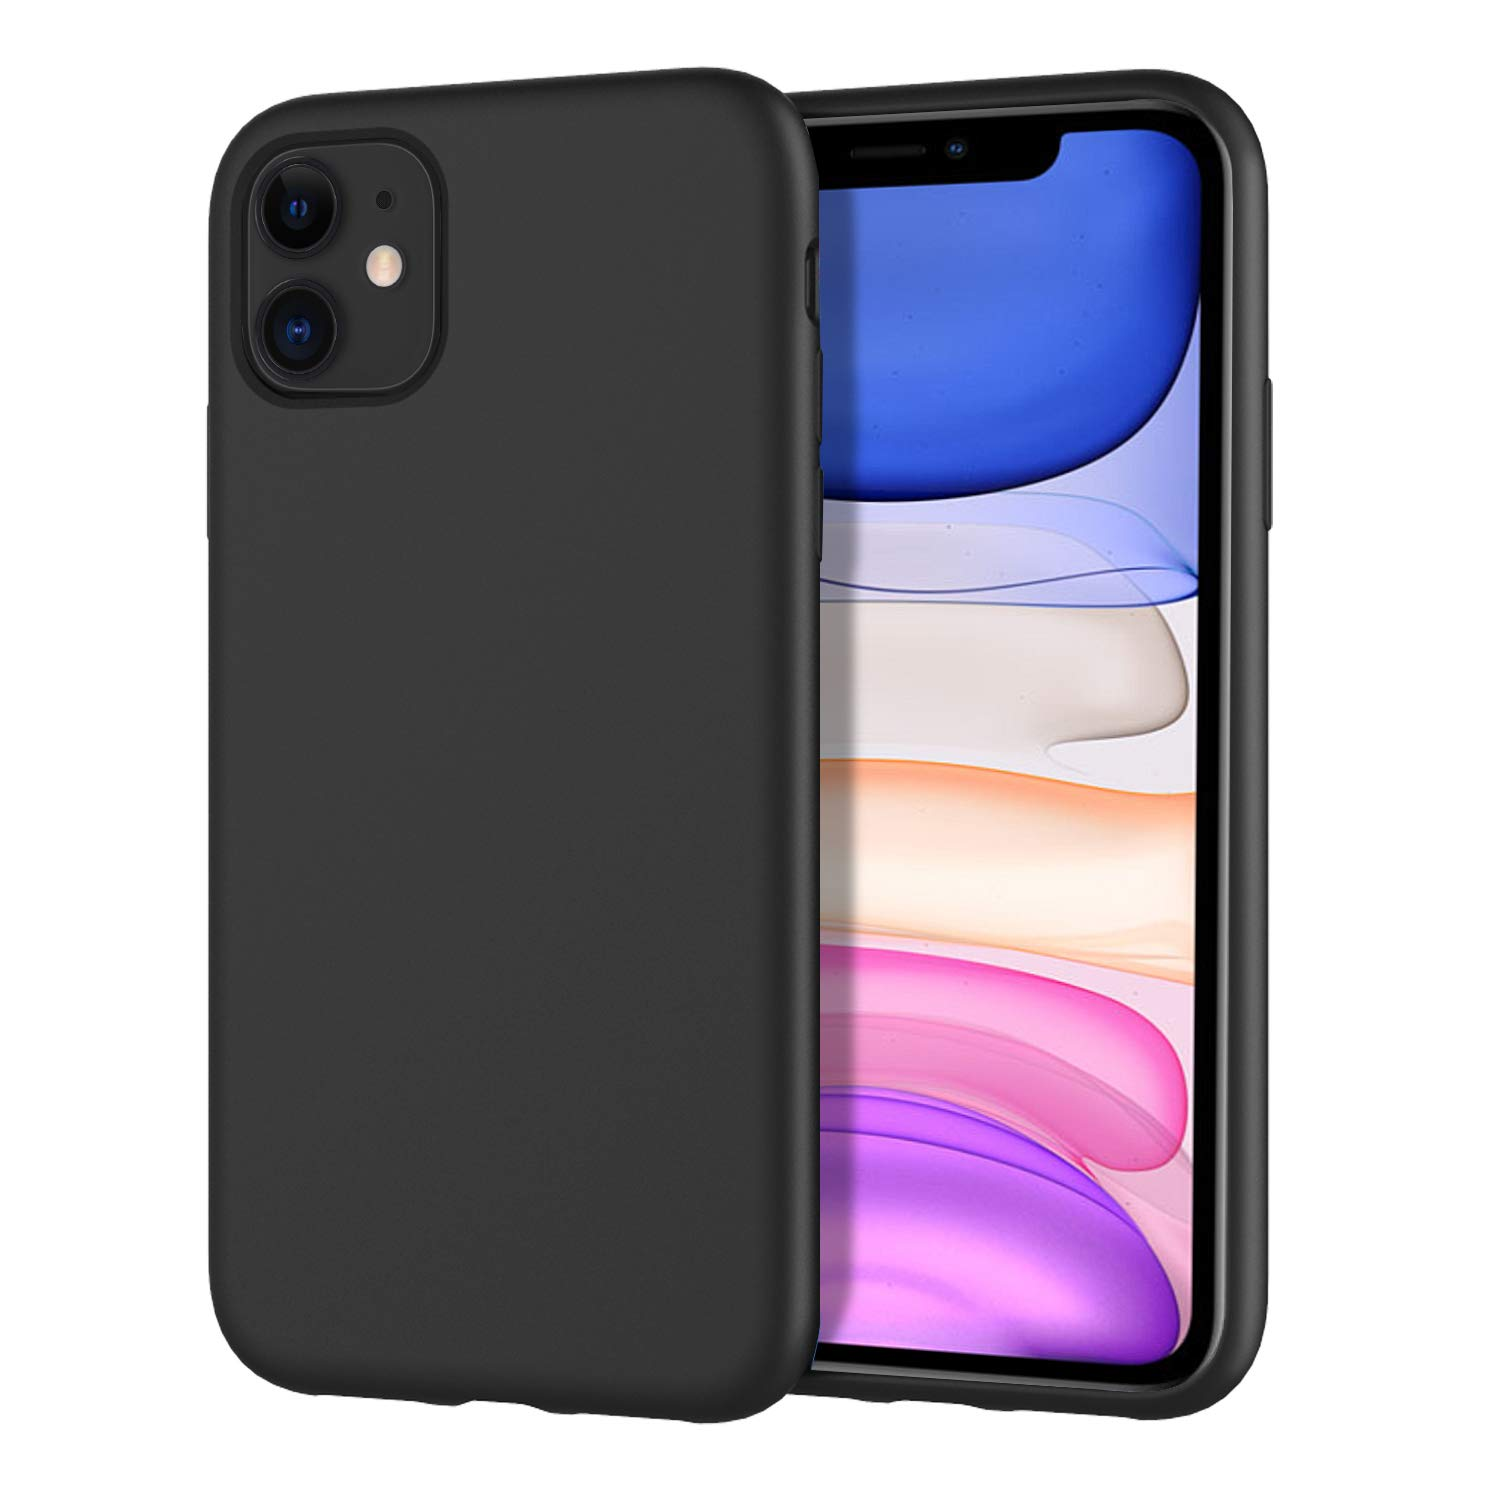 MoKo Compatible with iPhone 11 Case, Shockproof Slim Fit Liquid Silicone Gel Rubber Protective Case Soft Touch Back Cover Fit iPhone 11 6.1 inch 2019 - Black